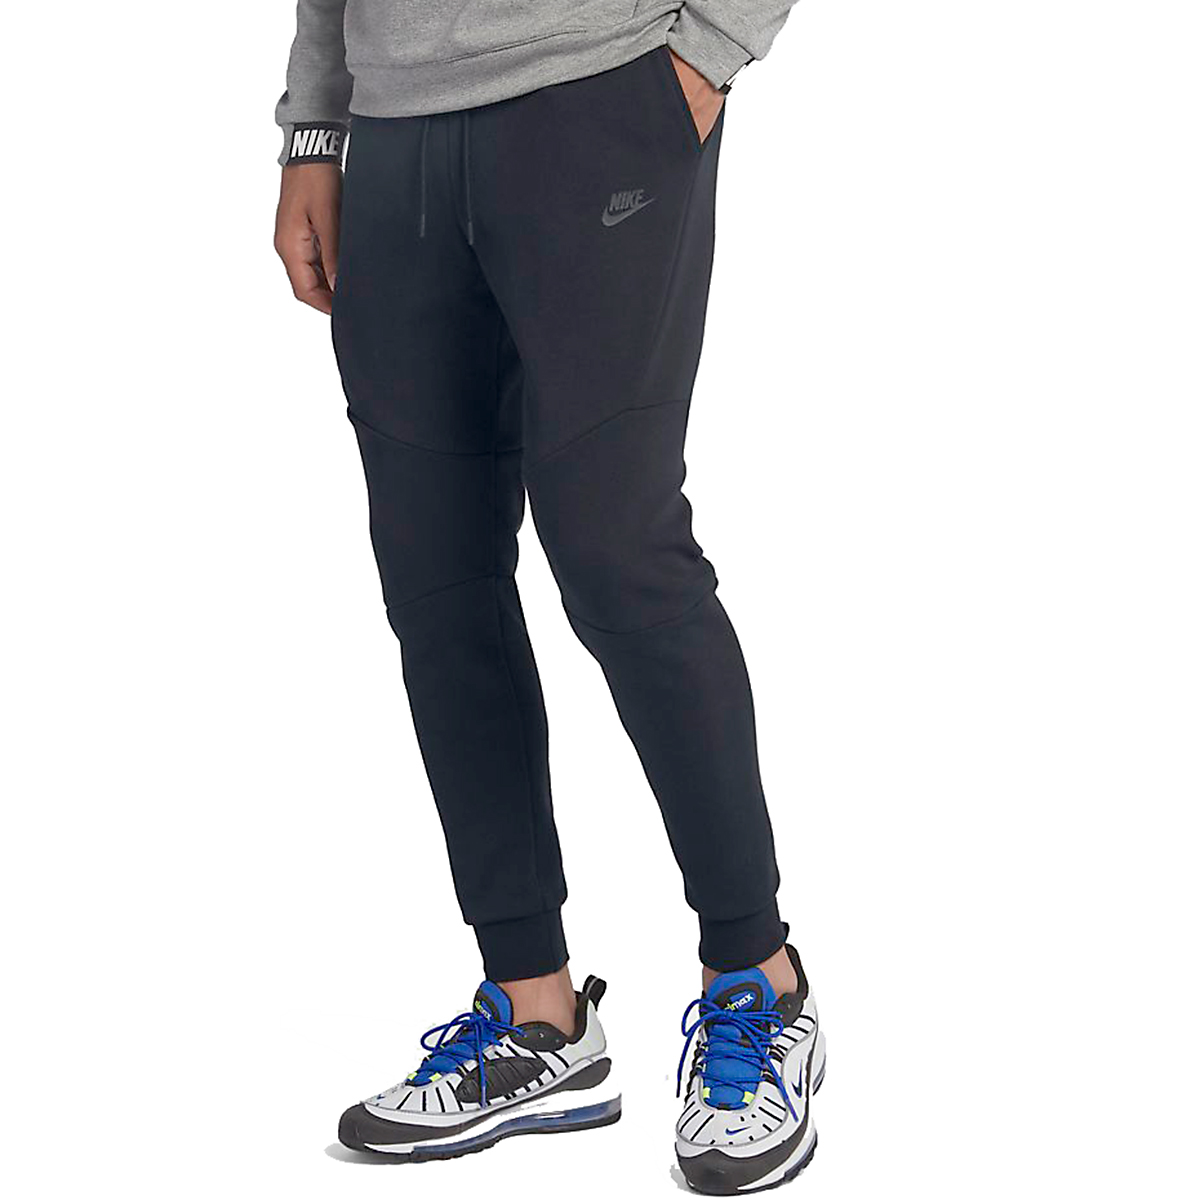 Men's Nike Tech Fleece Jogger, , large, image 1